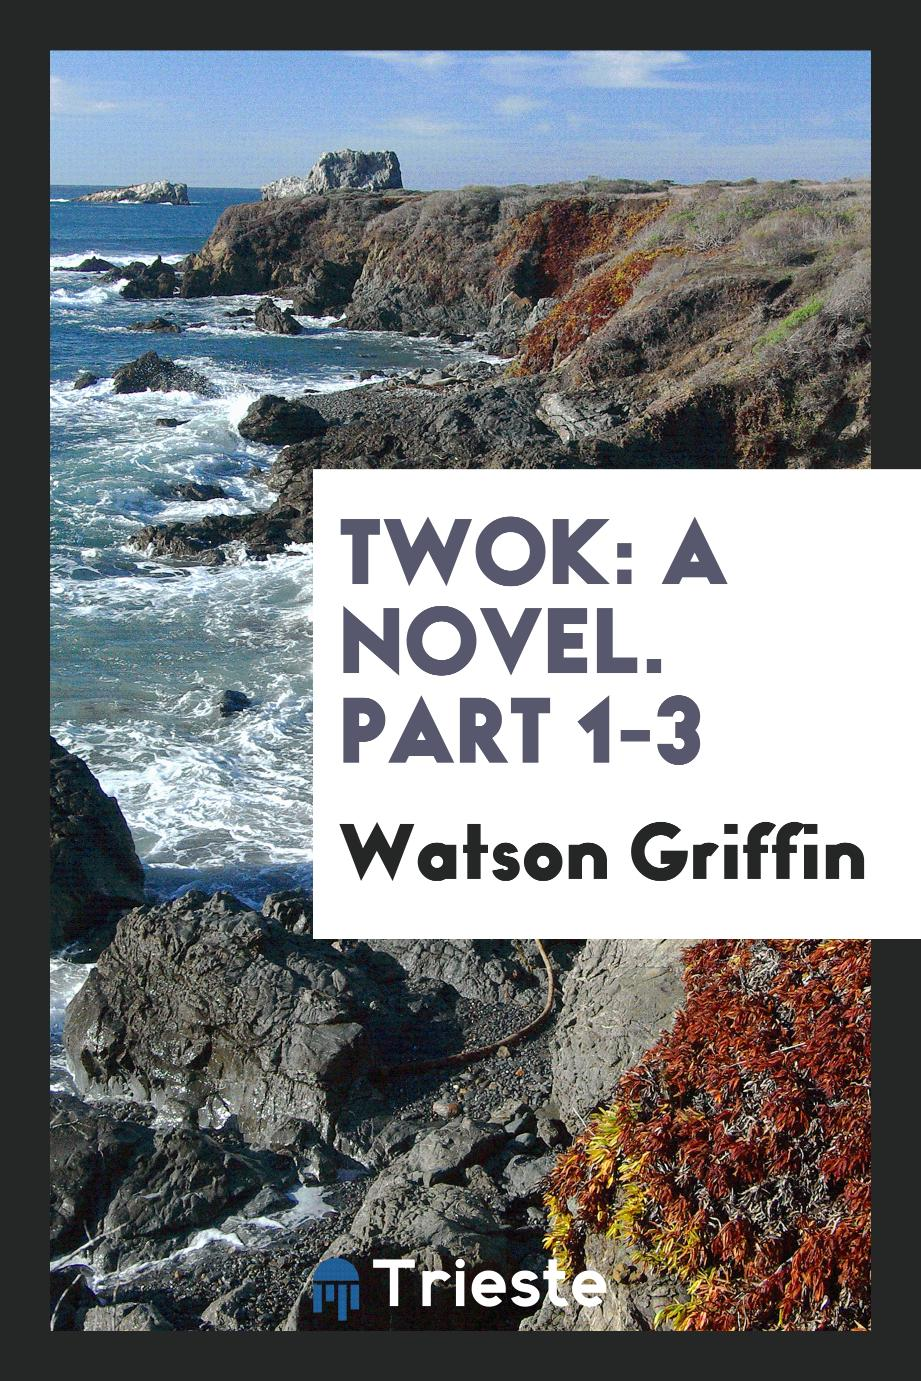 Watson Griffin - Twok: A Novel. Part 1-3